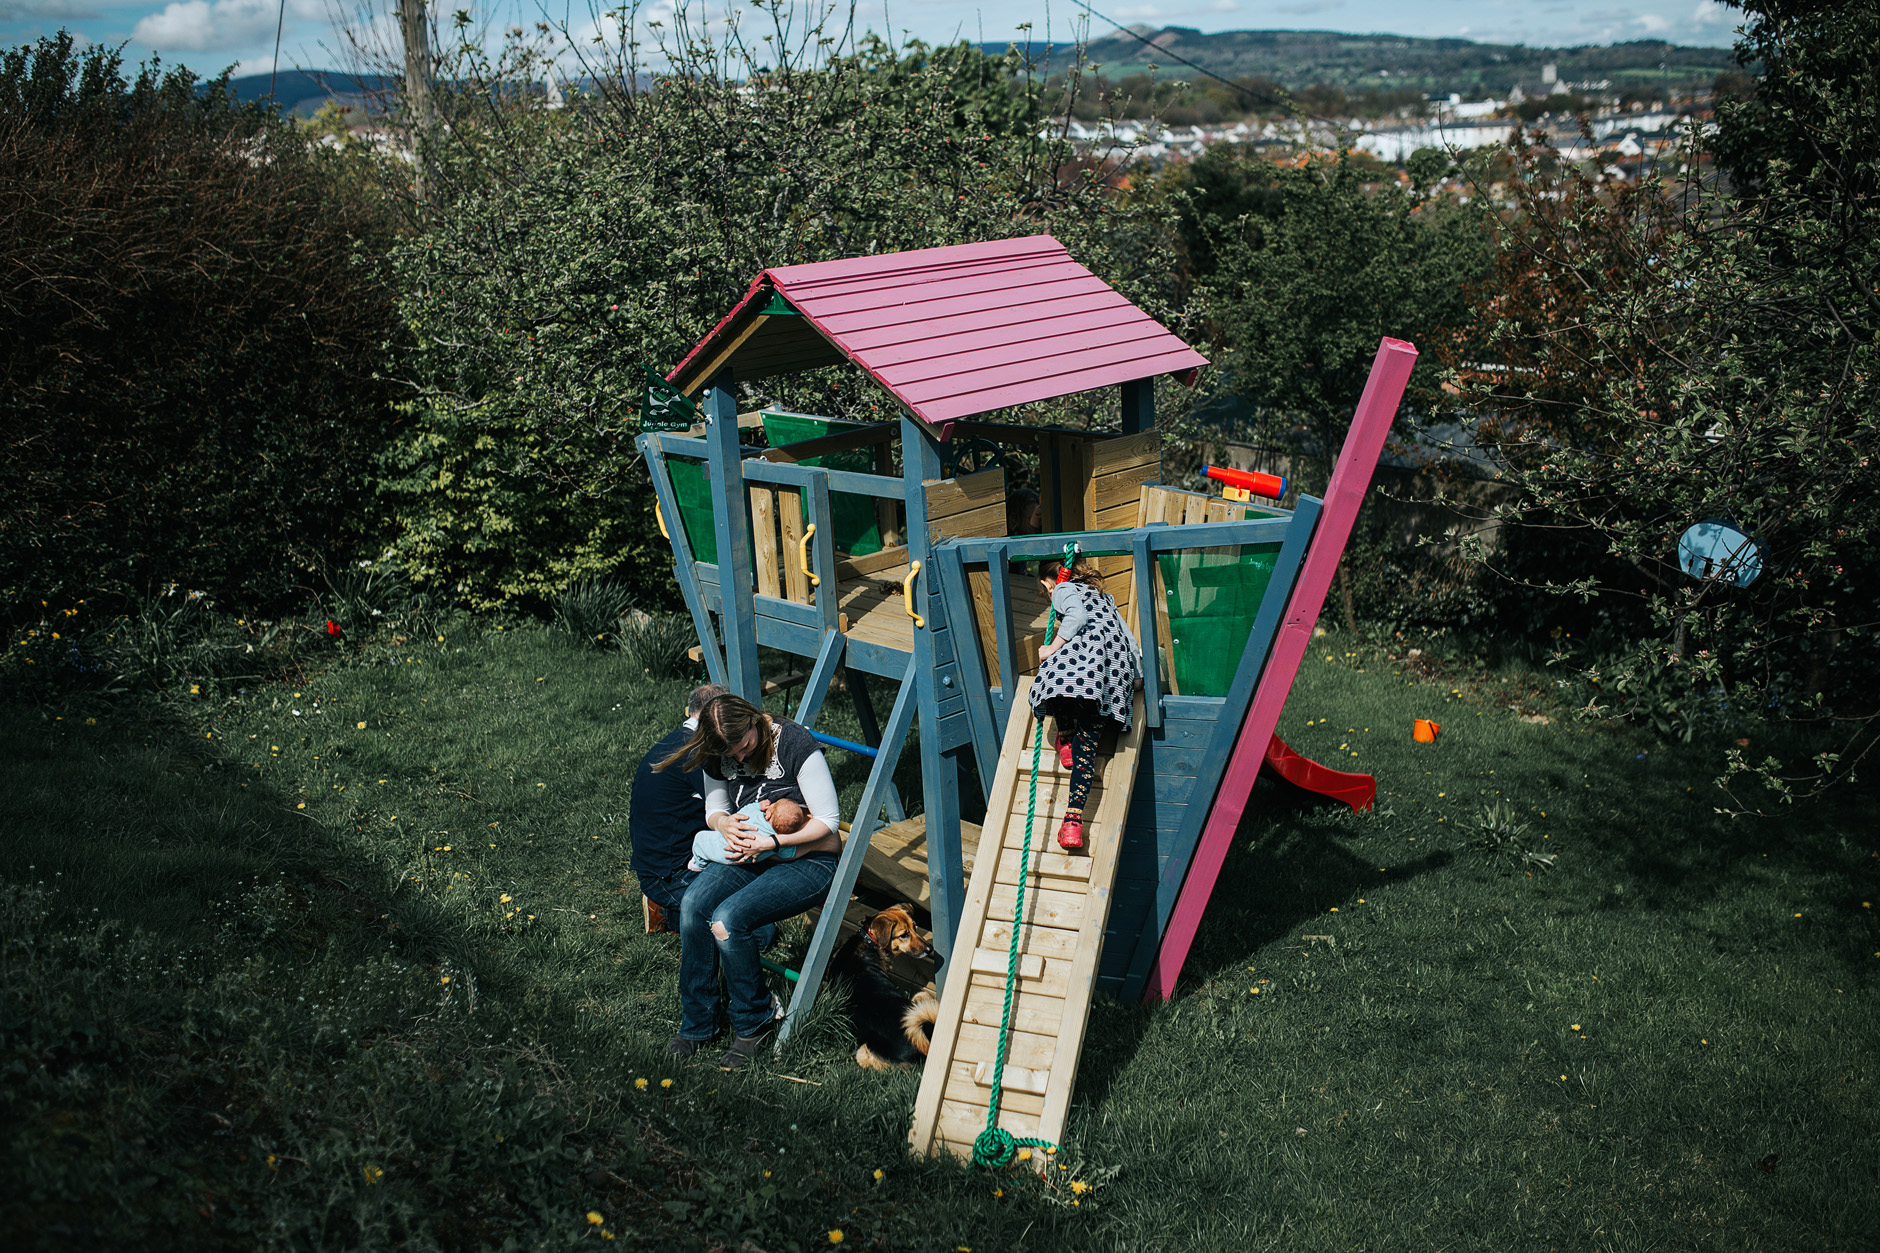 View of the back garden playhouse in the shape of a boat. Children playing, dog and mother breastfeeding